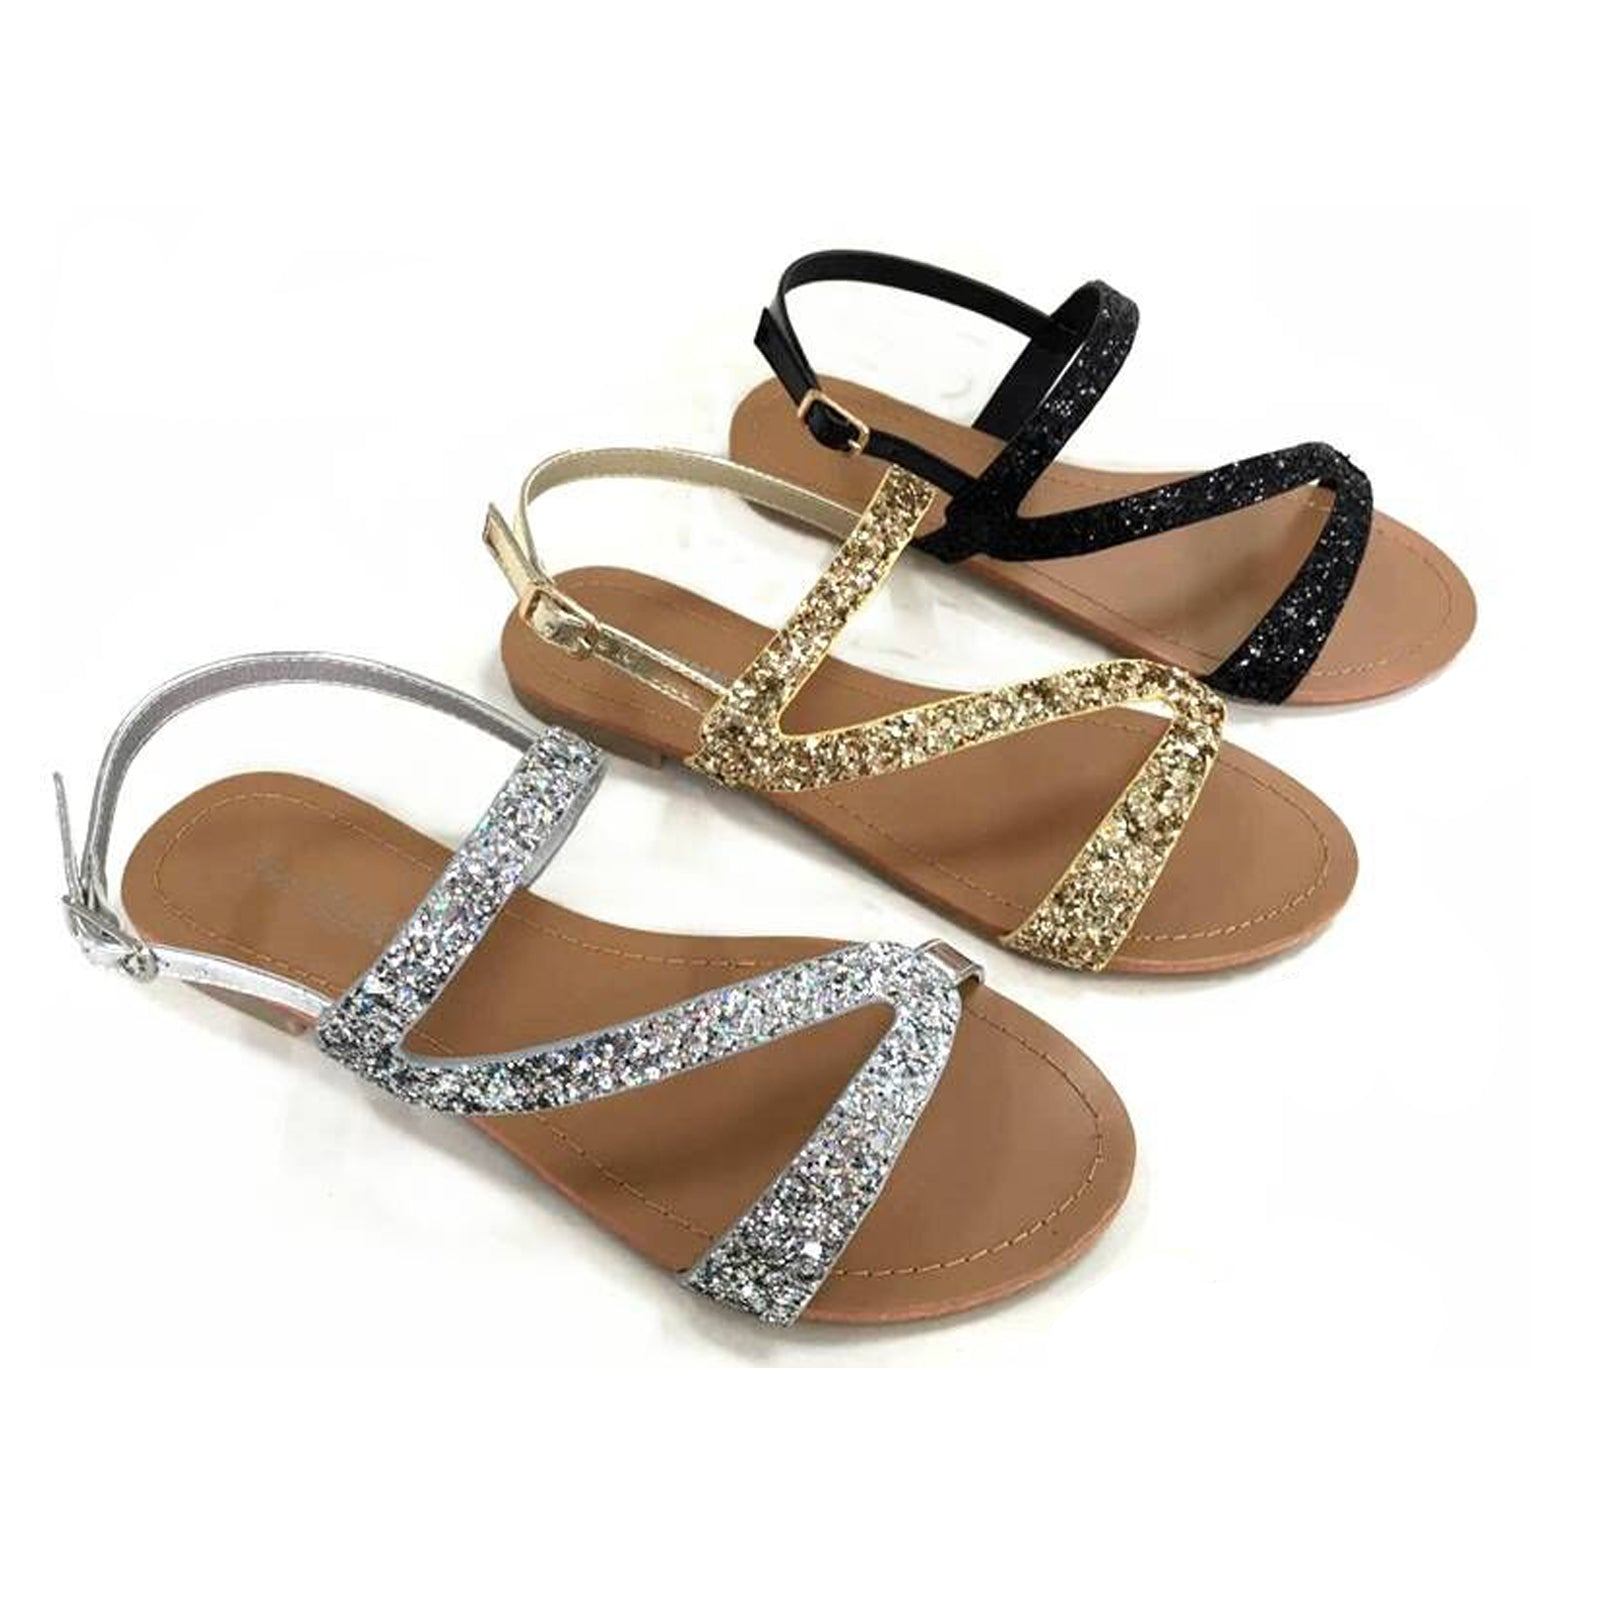 Wholesale Women's Shoes Assymetric Glittered Sandals NCPI5